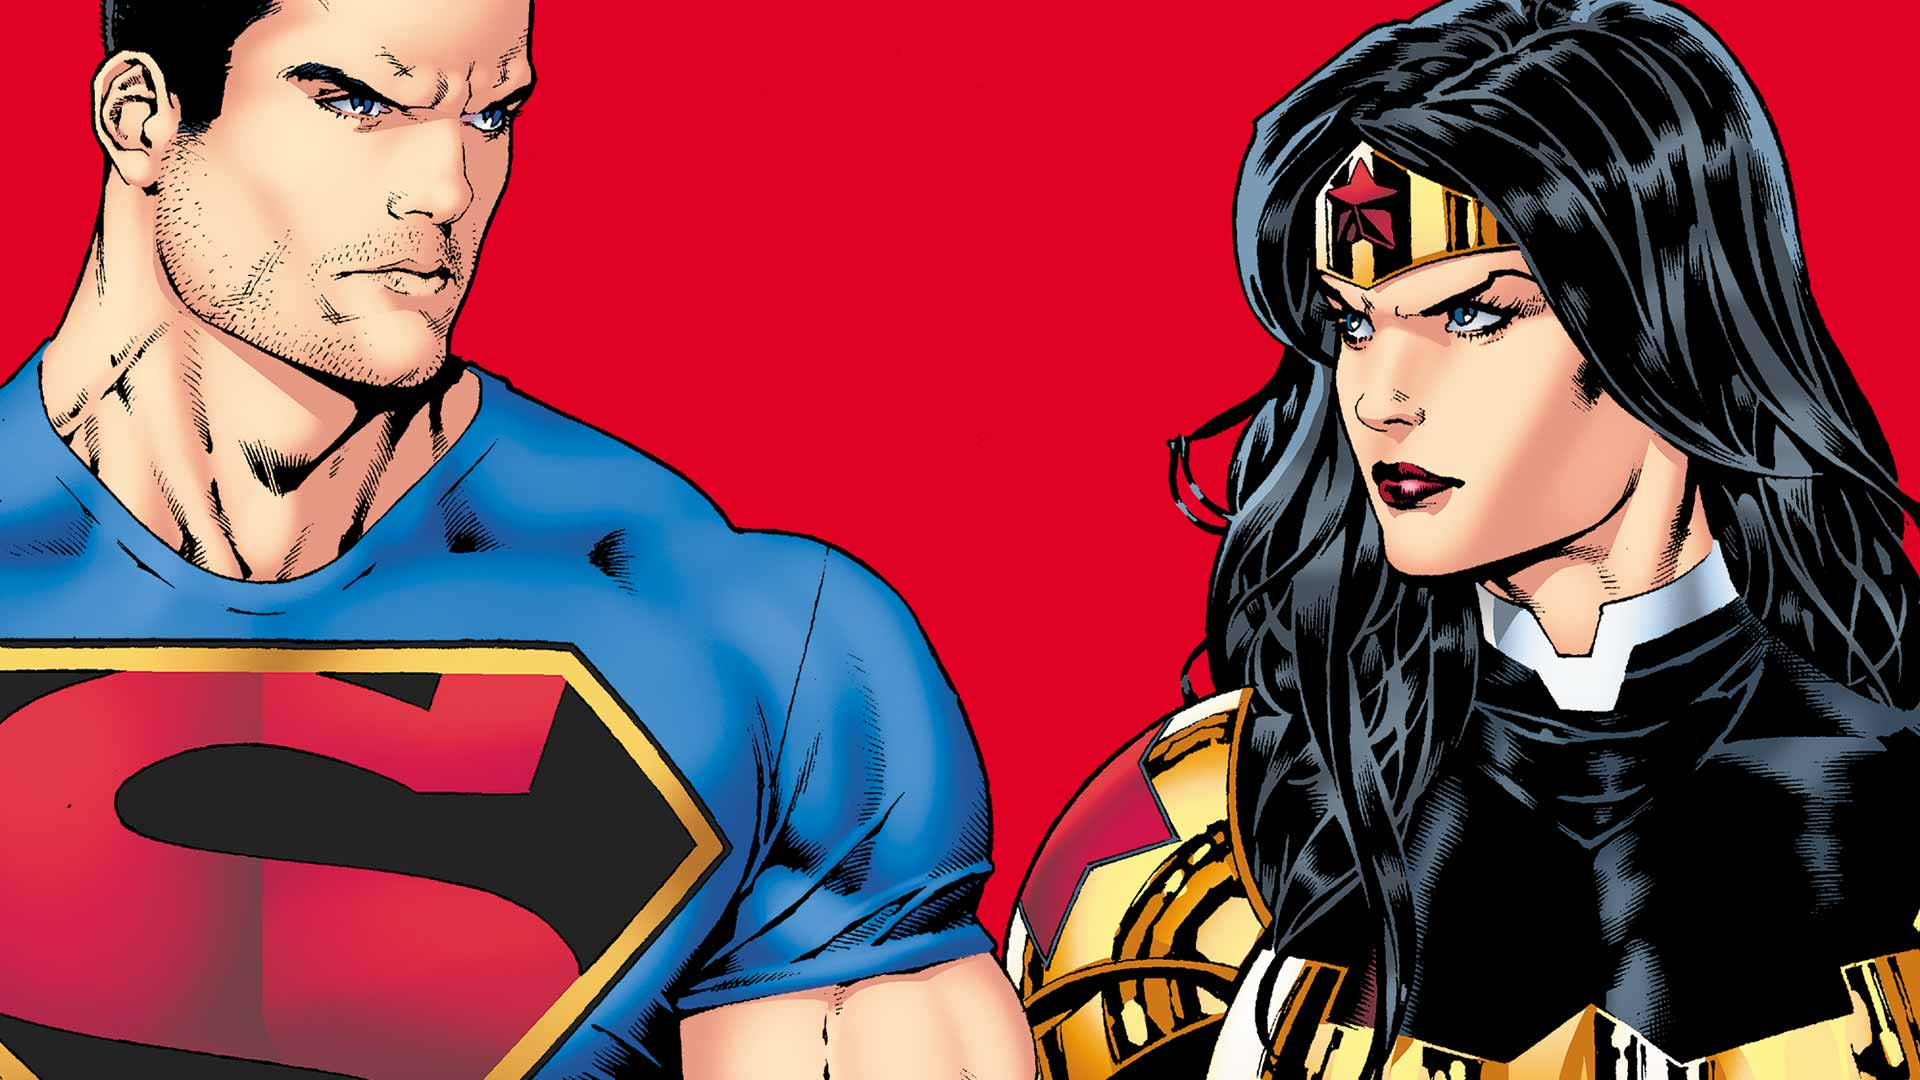 Superman A Look At Wonder Woman And Lois Lane - Comiconverse-6564